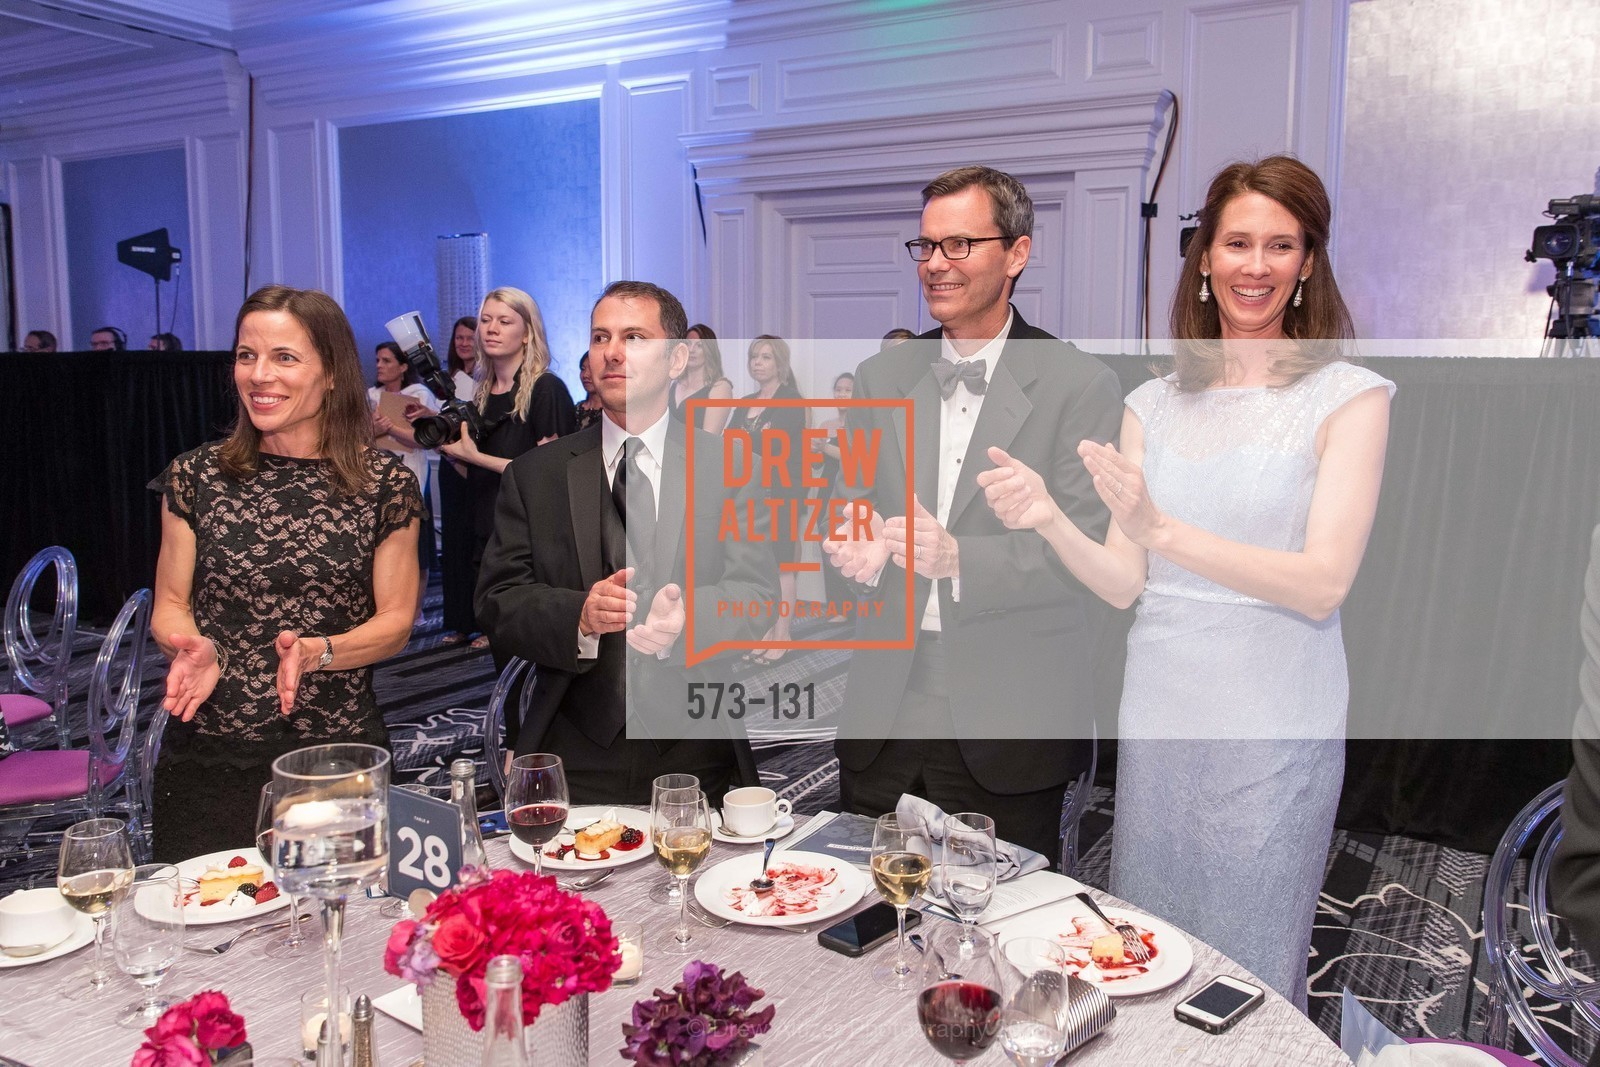 Sarah Kennedy, Tony Tafkins, Chad Lewis, Amy Lewis, JUVENILE DIABETES RESEARCH FOUNDATION  Hope Gala, The Ritz-Carlton, May 29th, 2015,Drew Altizer, Drew Altizer Photography, full-service agency, private events, San Francisco photographer, photographer california